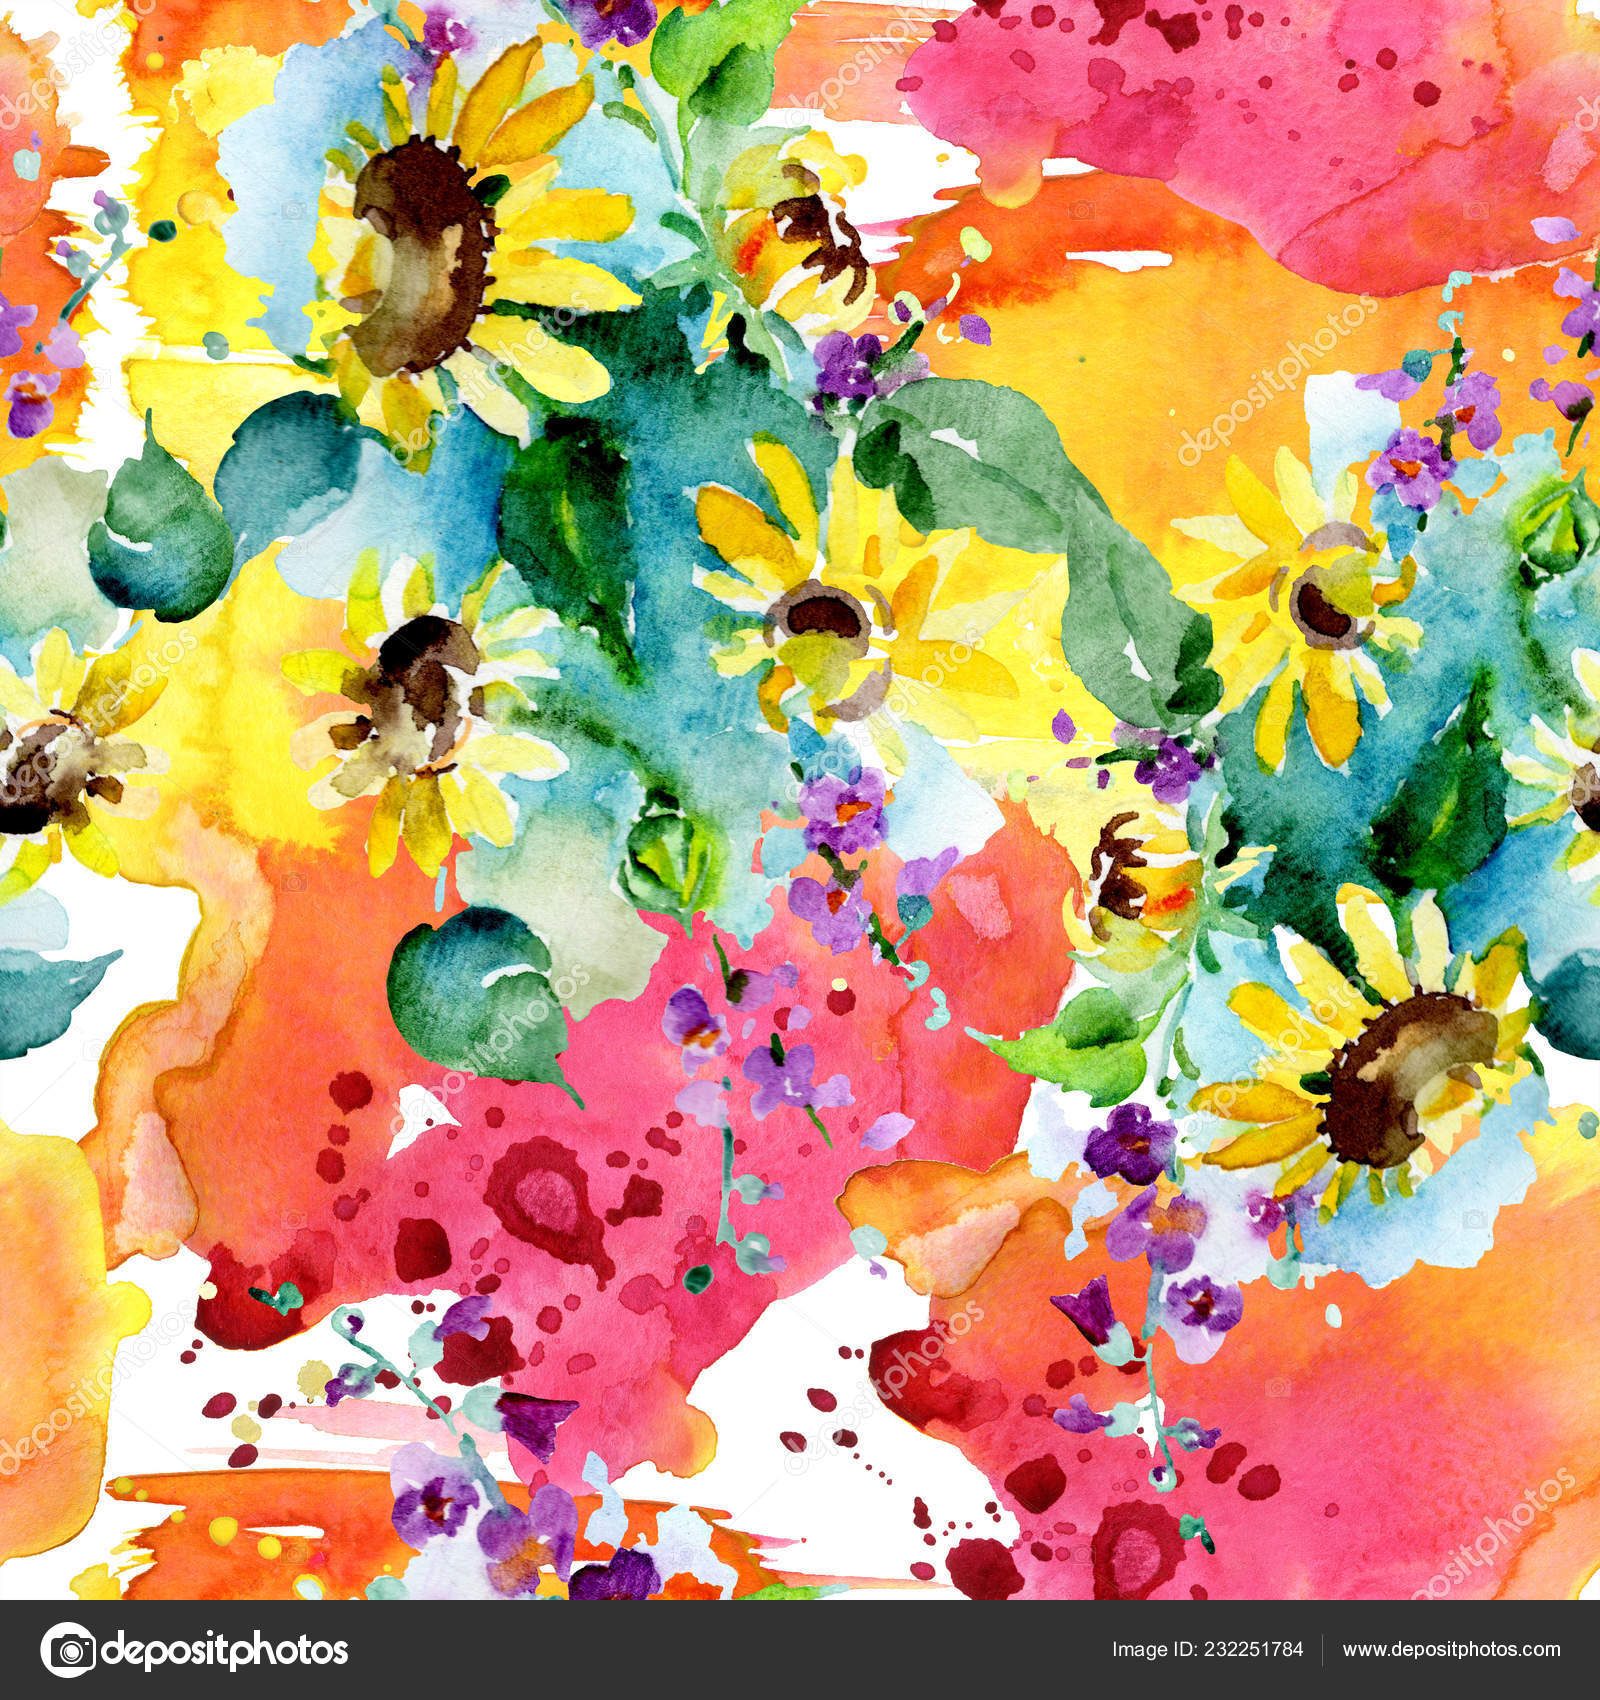 Bouquet Wildflowers Sunflowers Watercolor Background Illustration Set Watercolour Drawing Fashion Stock Photo Image By C Andreyanush 232251784